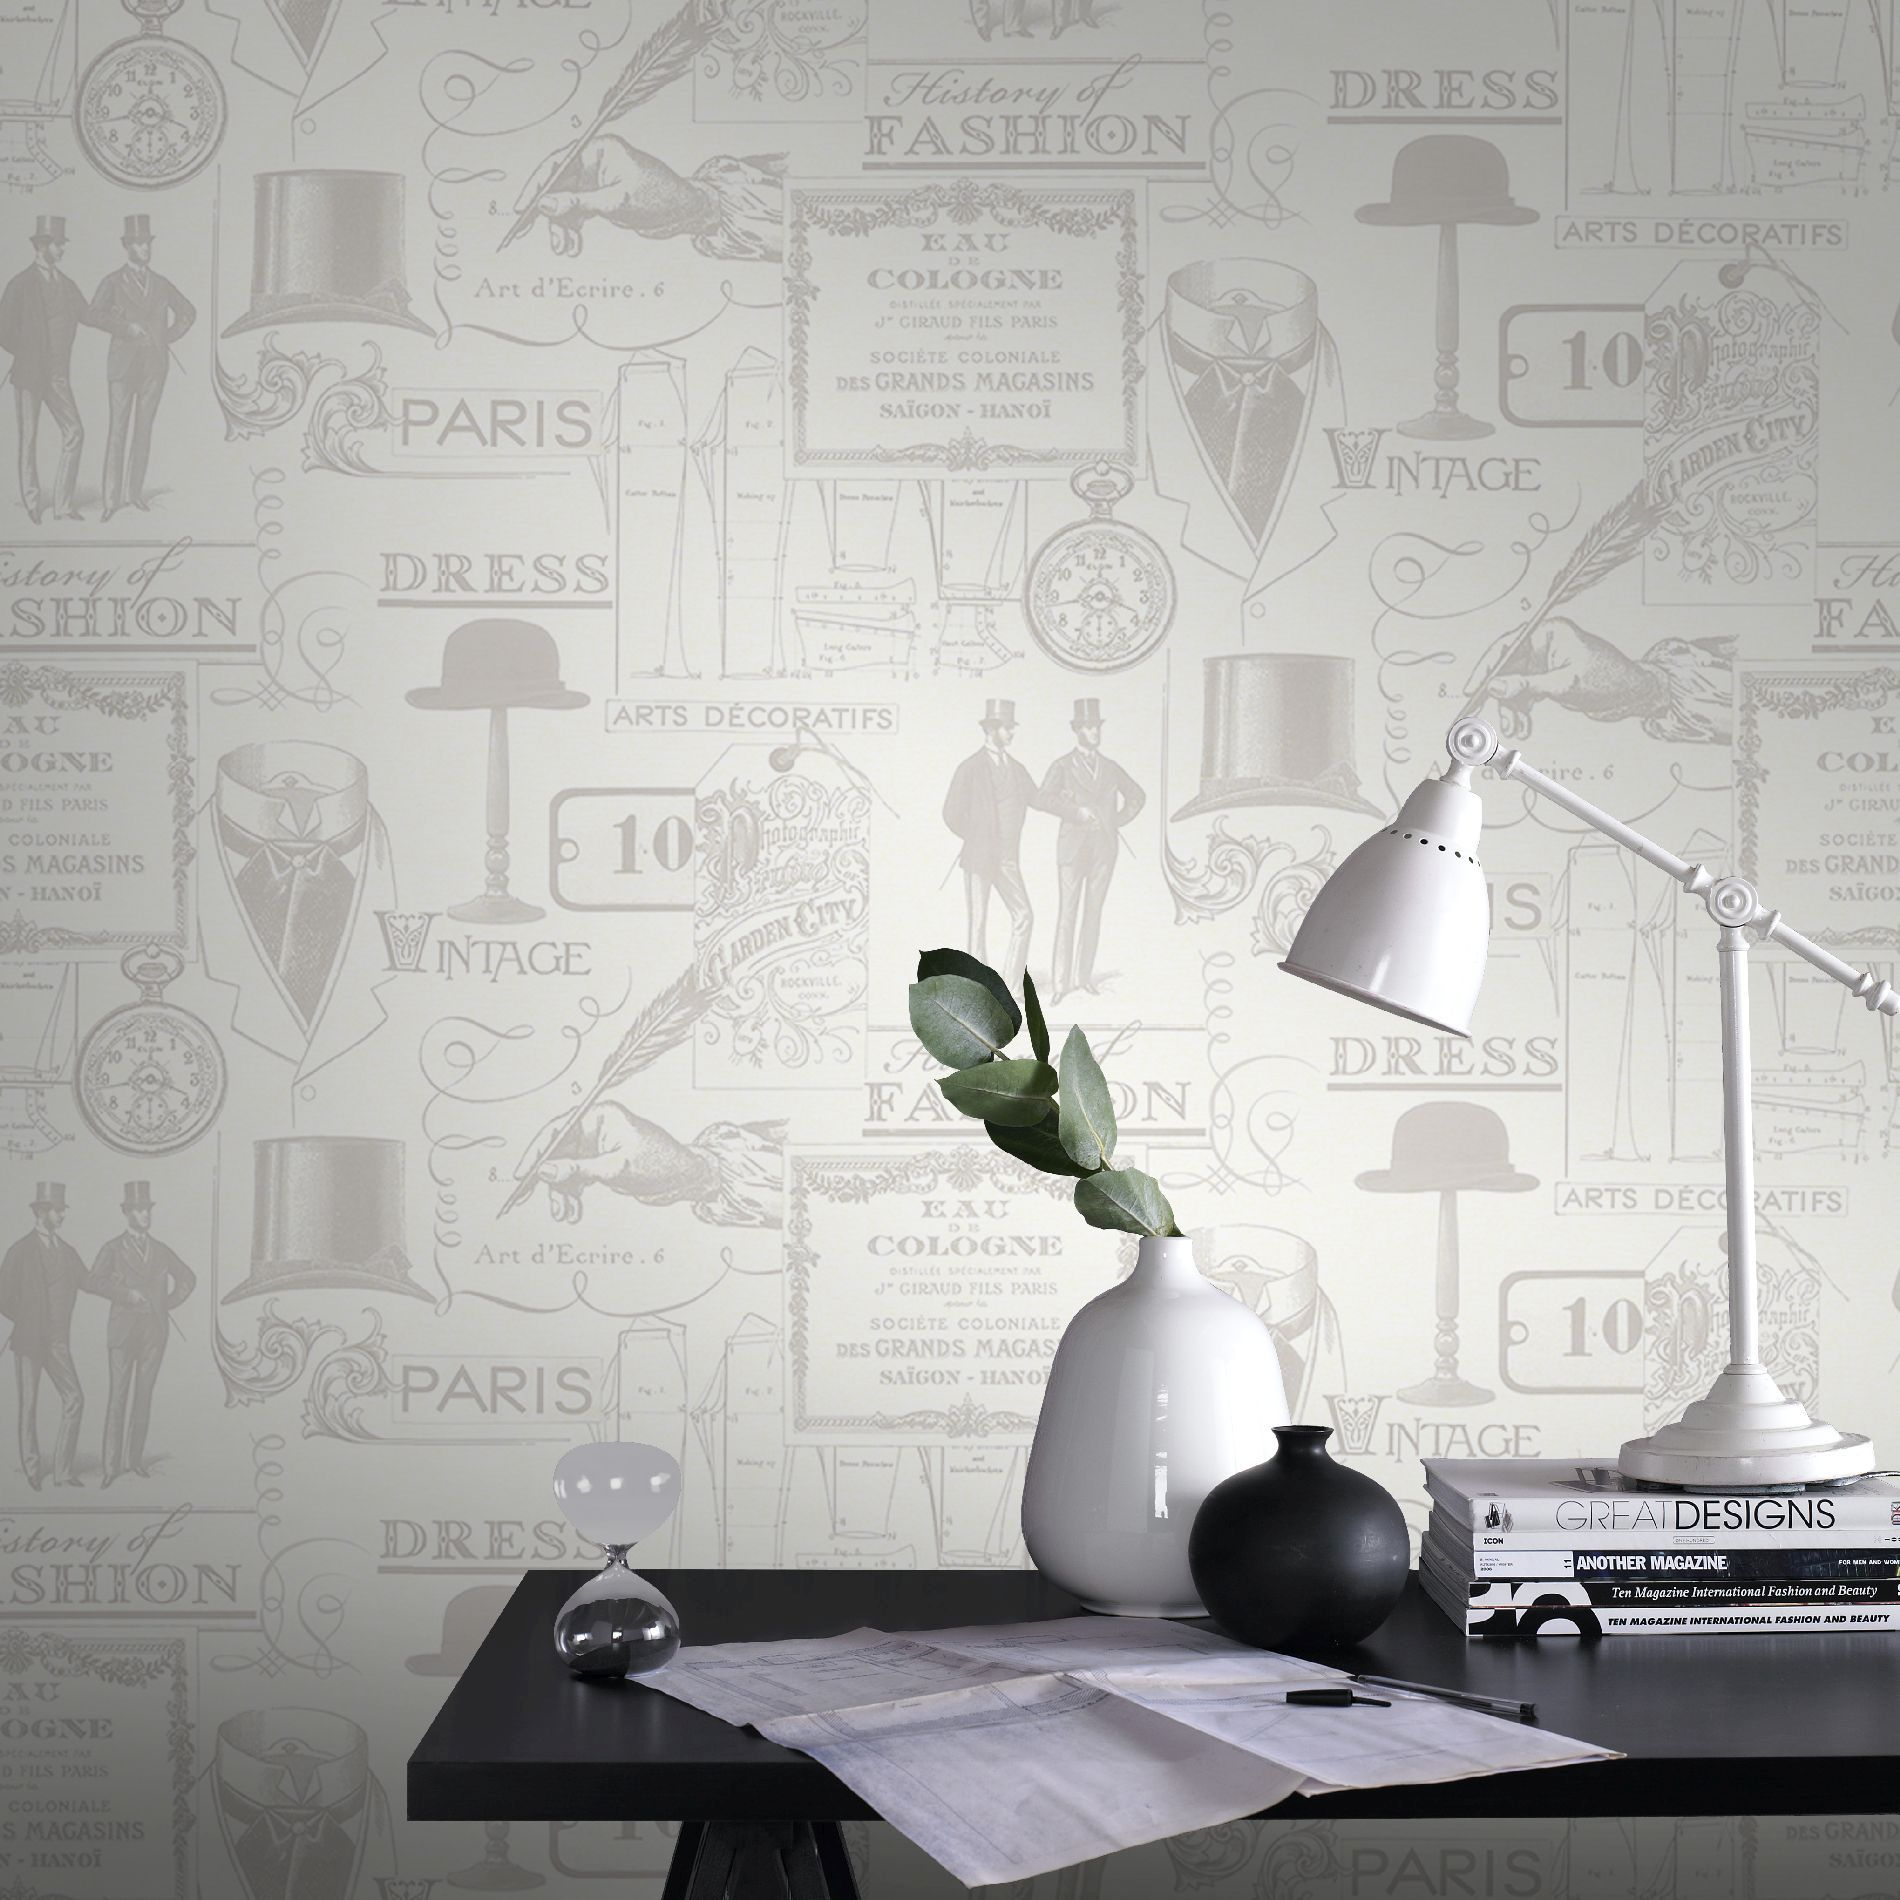 Details about Laurence Llewelyn-Bowen Top Hat n Tails Neutral Designer Wallpaper (Was £23)